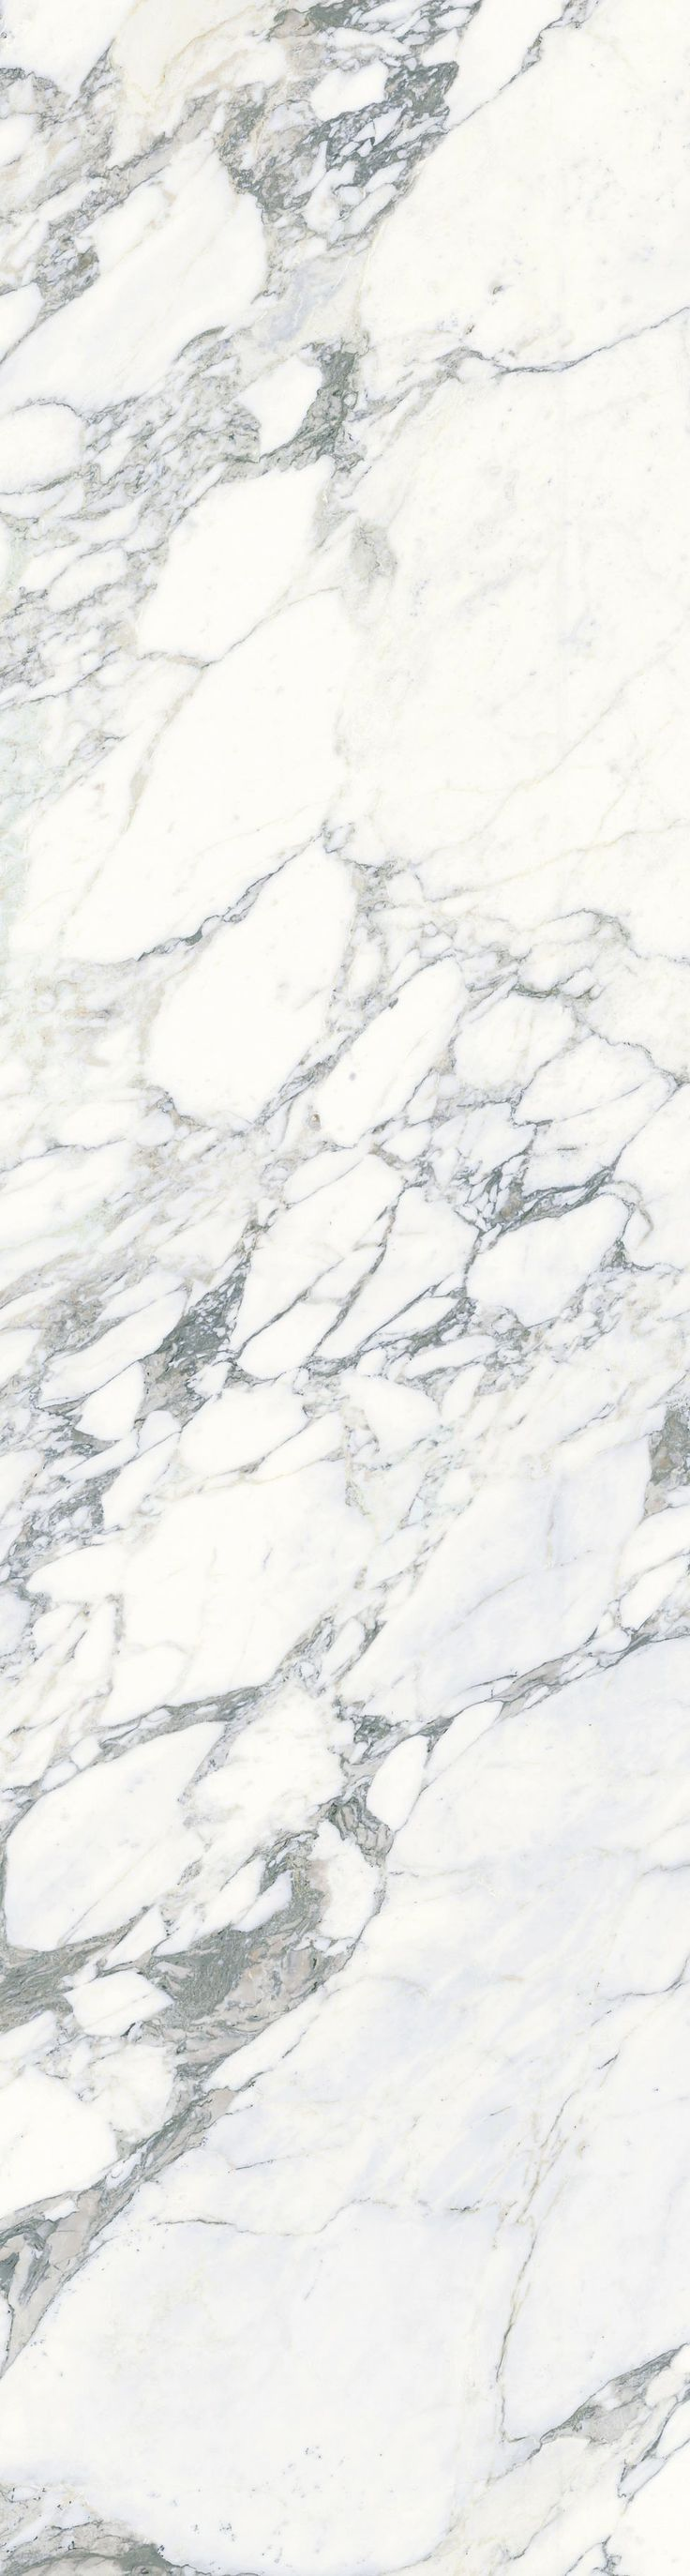 Must see   Wallpaper Home Screen Marble - 24e1462ebe54580a0a6db9ec99a7ee14--pastel-pink-cute  Trends_344022.jpg